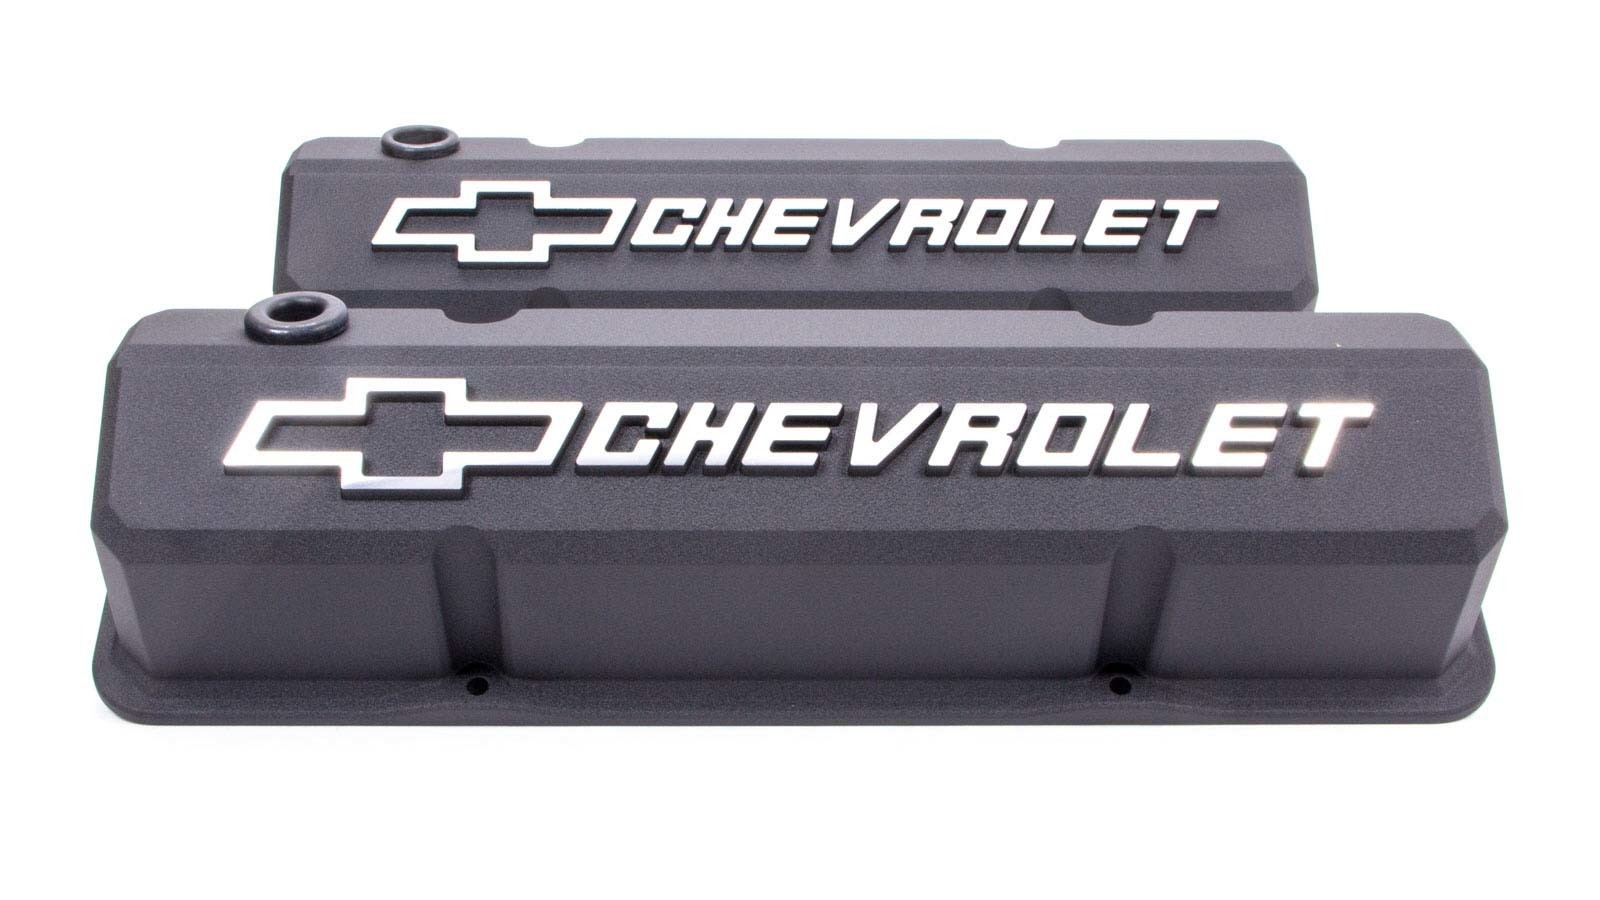 Proform 141-921 Valve Cover, Slant-Edge, Tall, Baffled, Breather Hole, Raised Chevrolet Bowtie Logo, Aluminum, Black Crinkle, Small Block Chevy, Pair